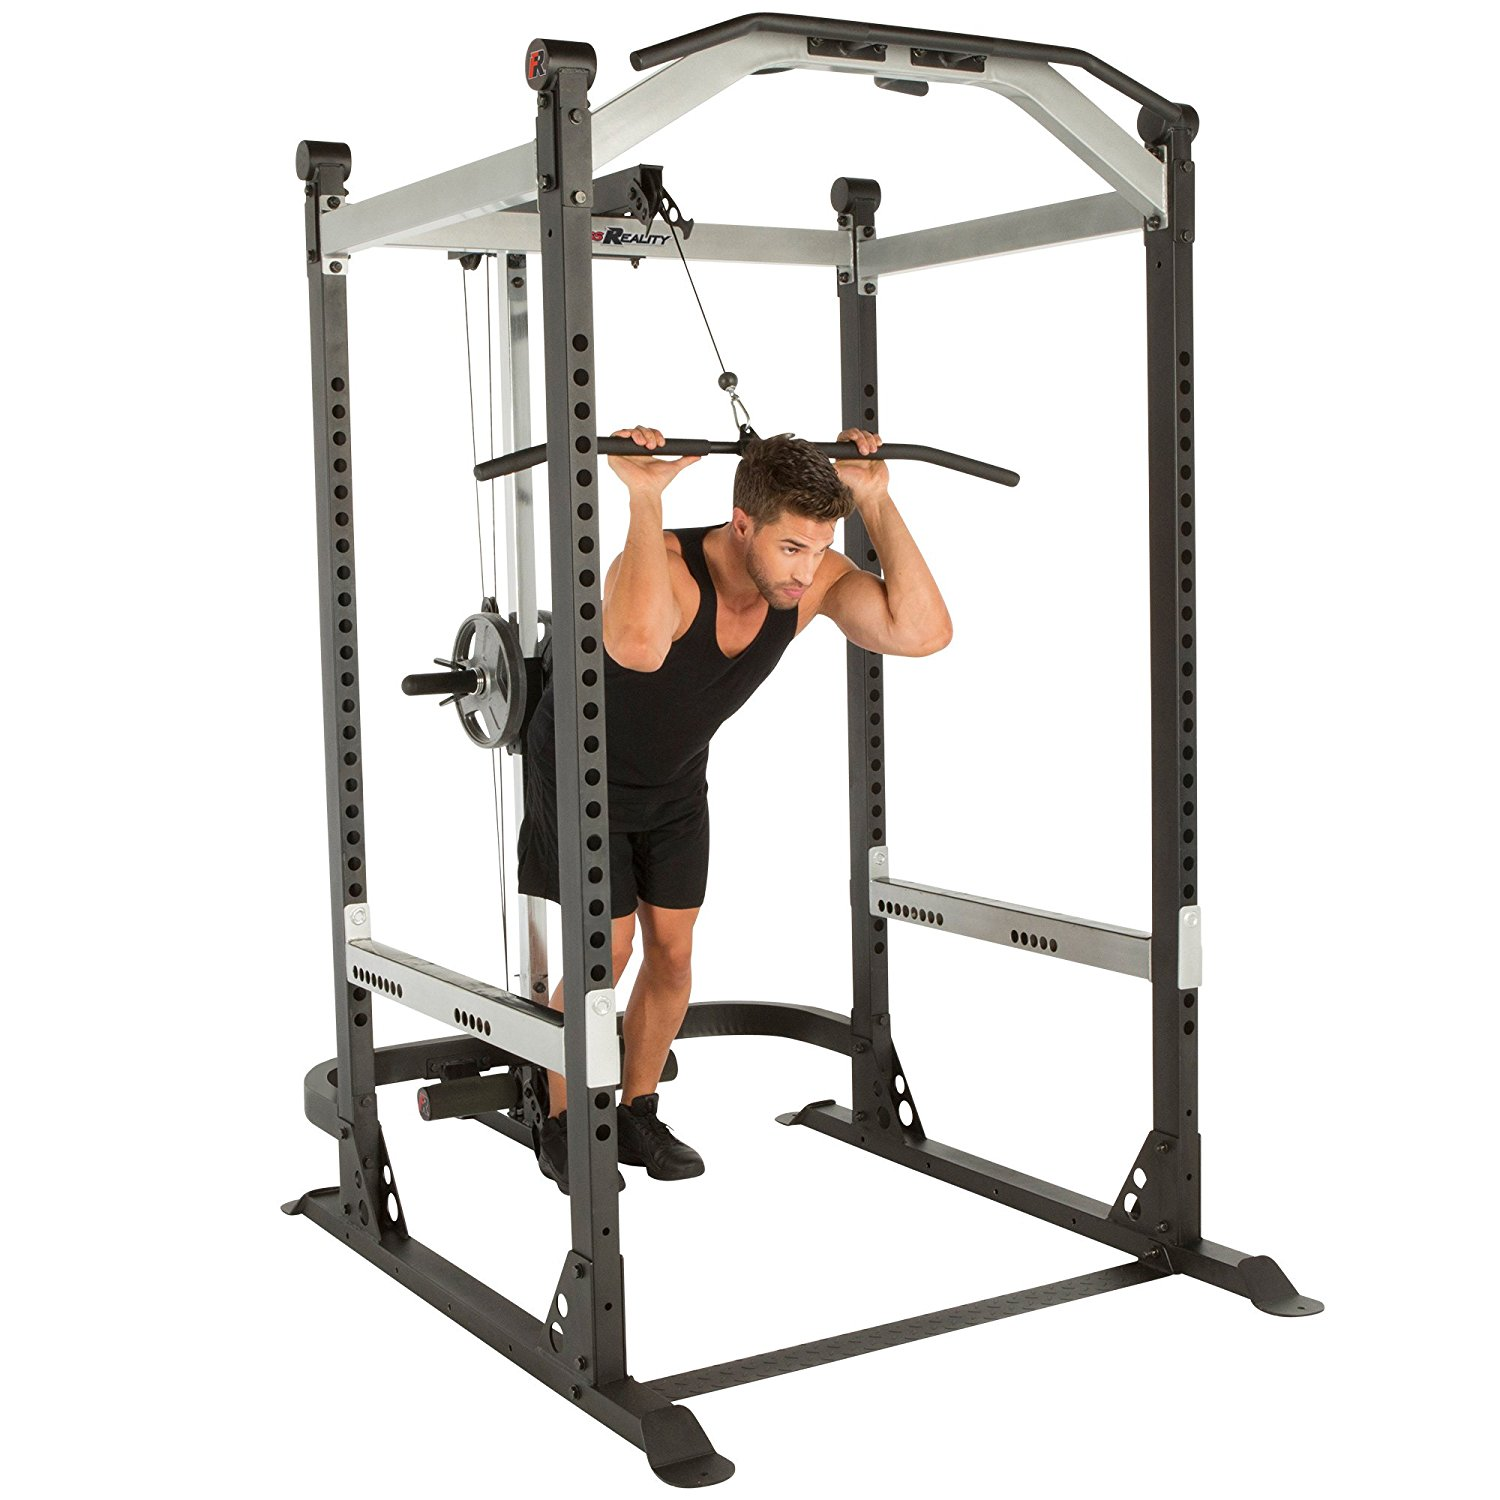 top rack rated best fitness racks power class titan uncategorized high cage updated olympic x dollars reality light capacity under commercial